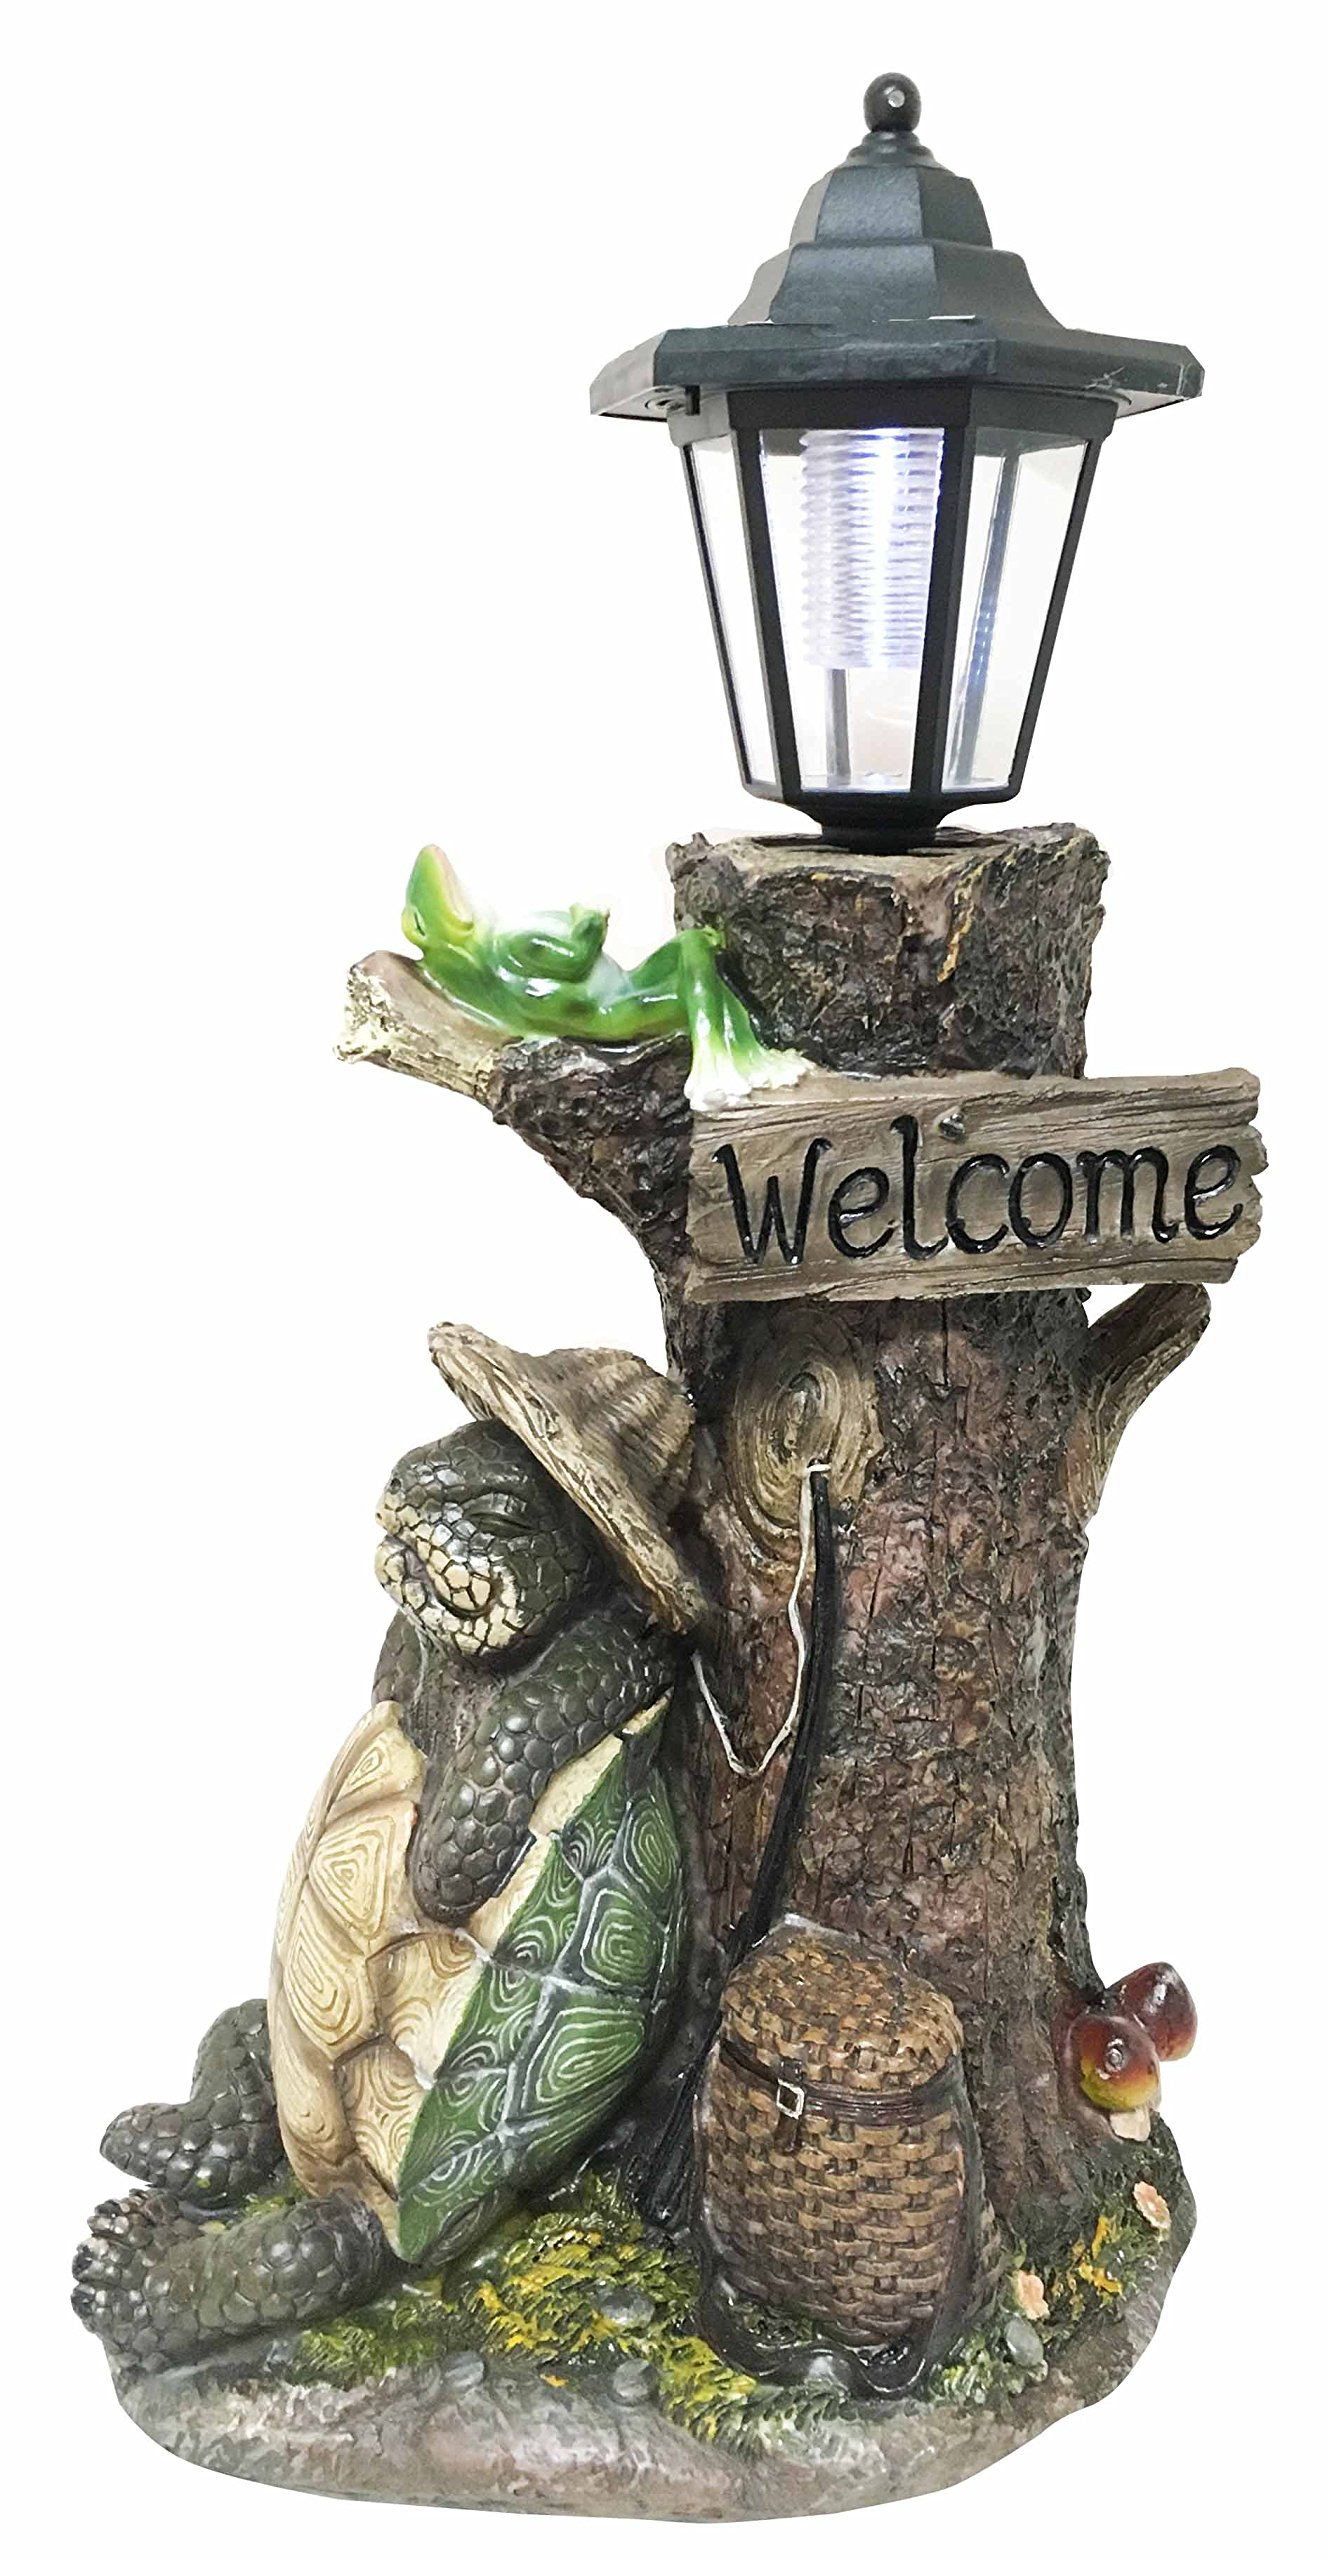 Summer Holidays Under Shady Tree Sleeping Hiker Turtle Tortoise With Best Friend Frog Statue With Solar Powered Lantern LED Light Patio Decor Indoor Outdoor Figurine